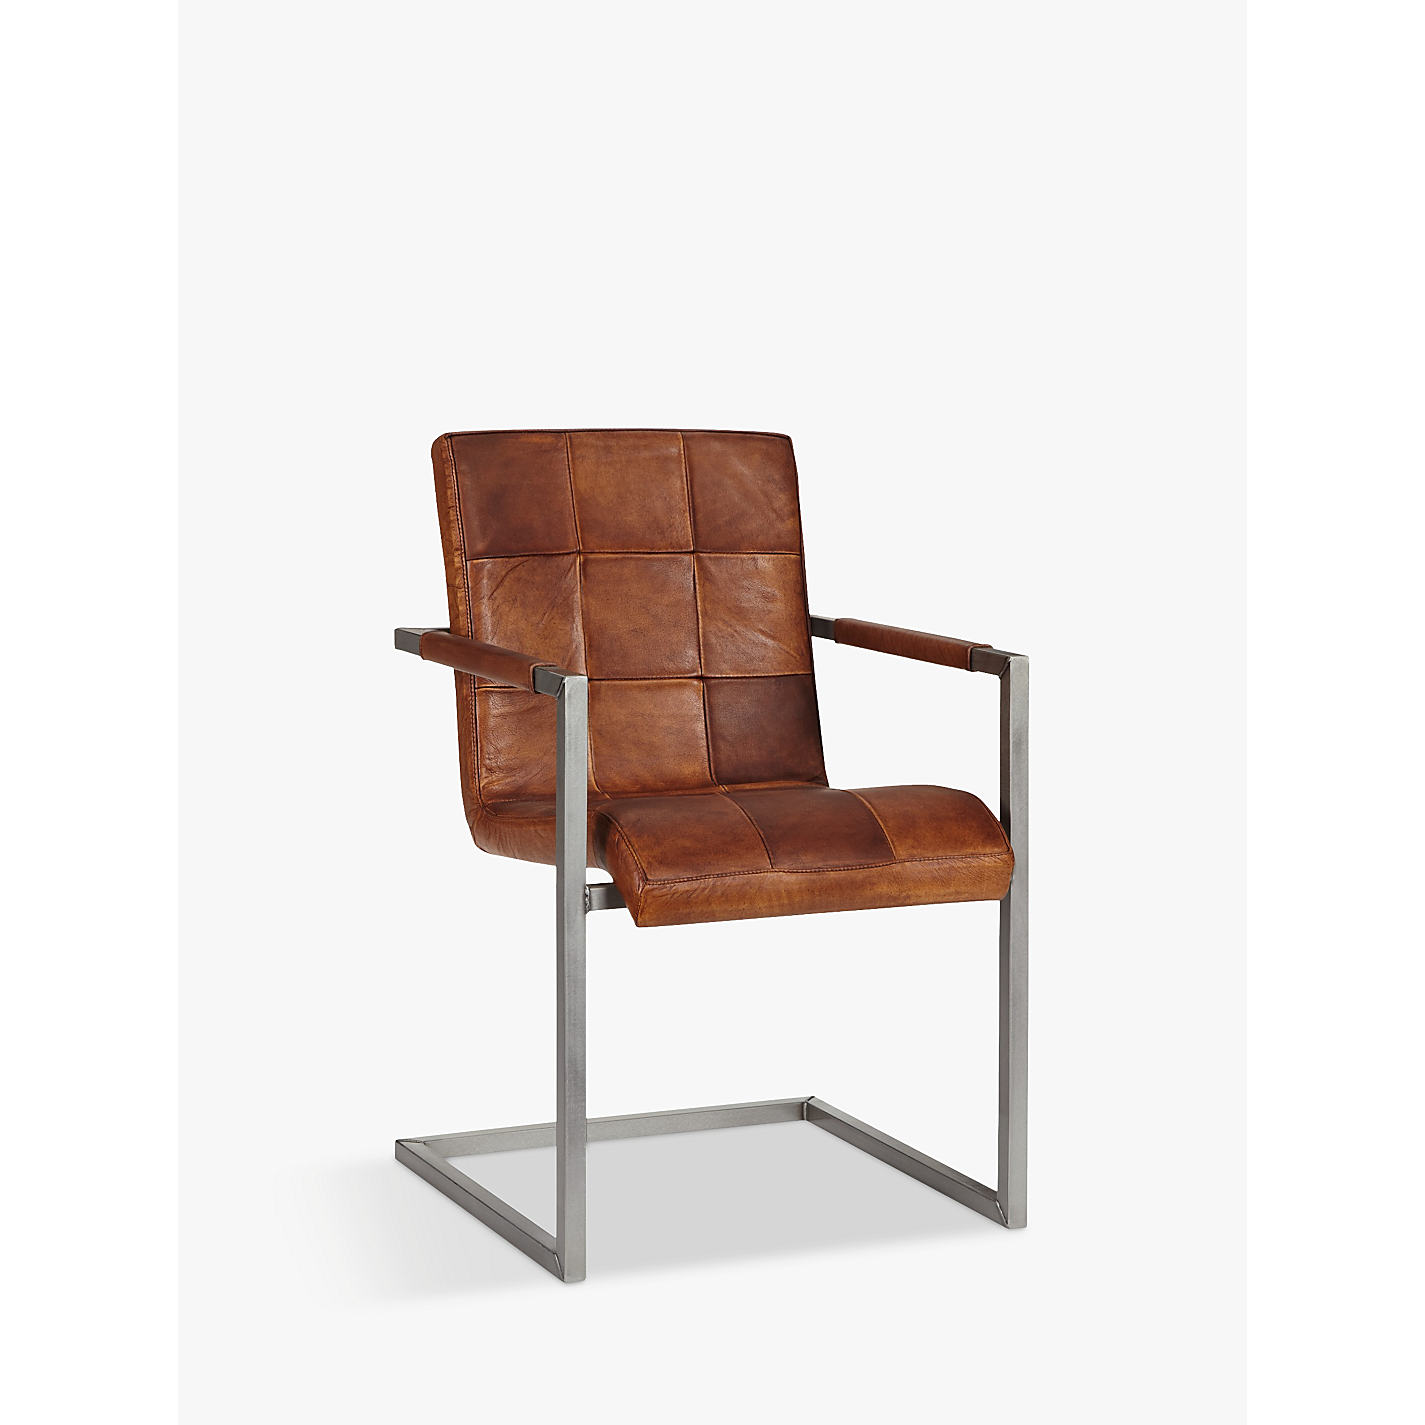 buy john lewis classico leather office/dining chair | john lewis